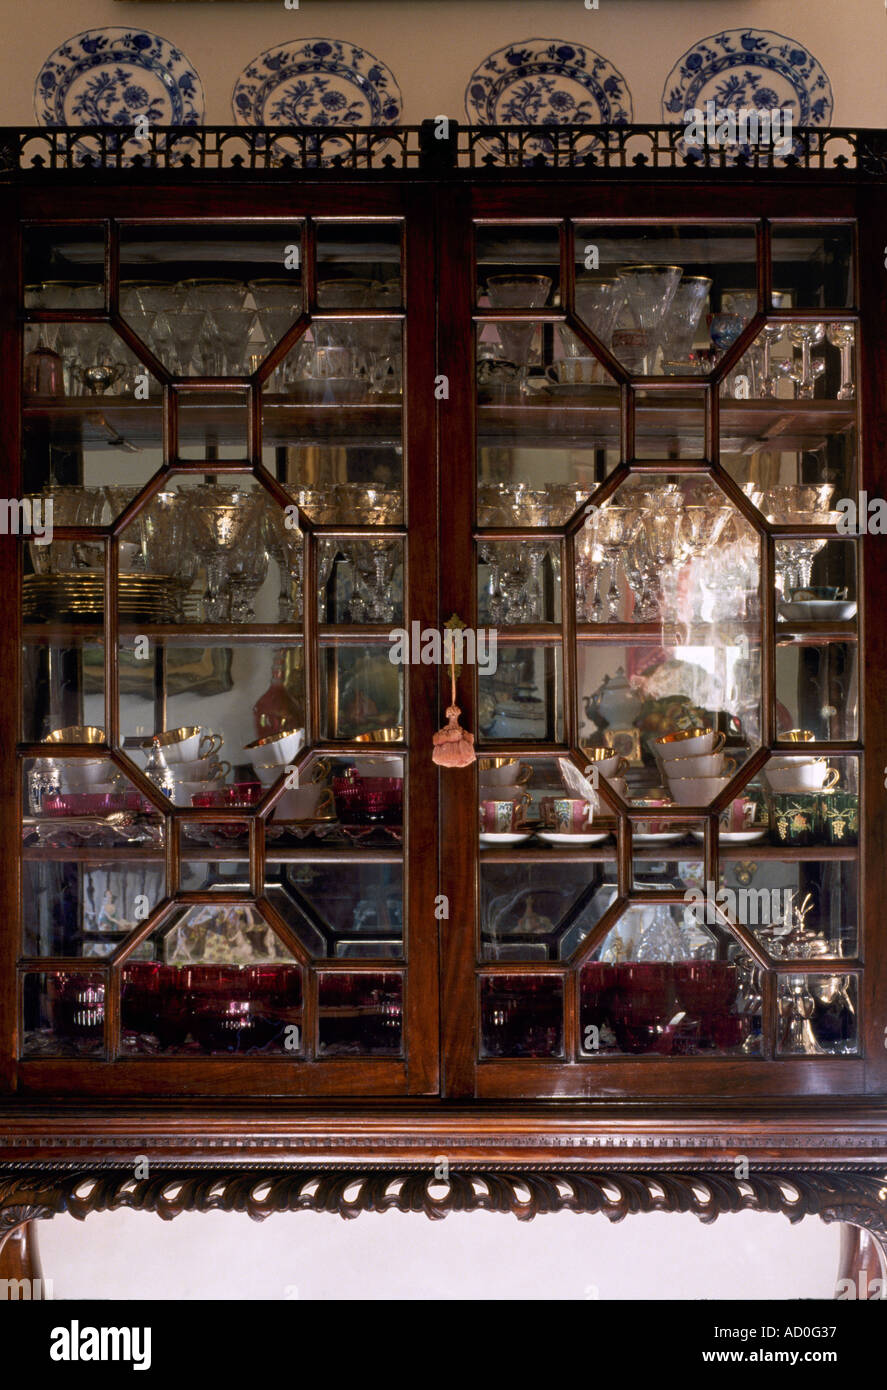 Waverley, Columbus, Mississippi, 1852. Detail Of Display Cabinet With  Glassware And China In Dining Room.